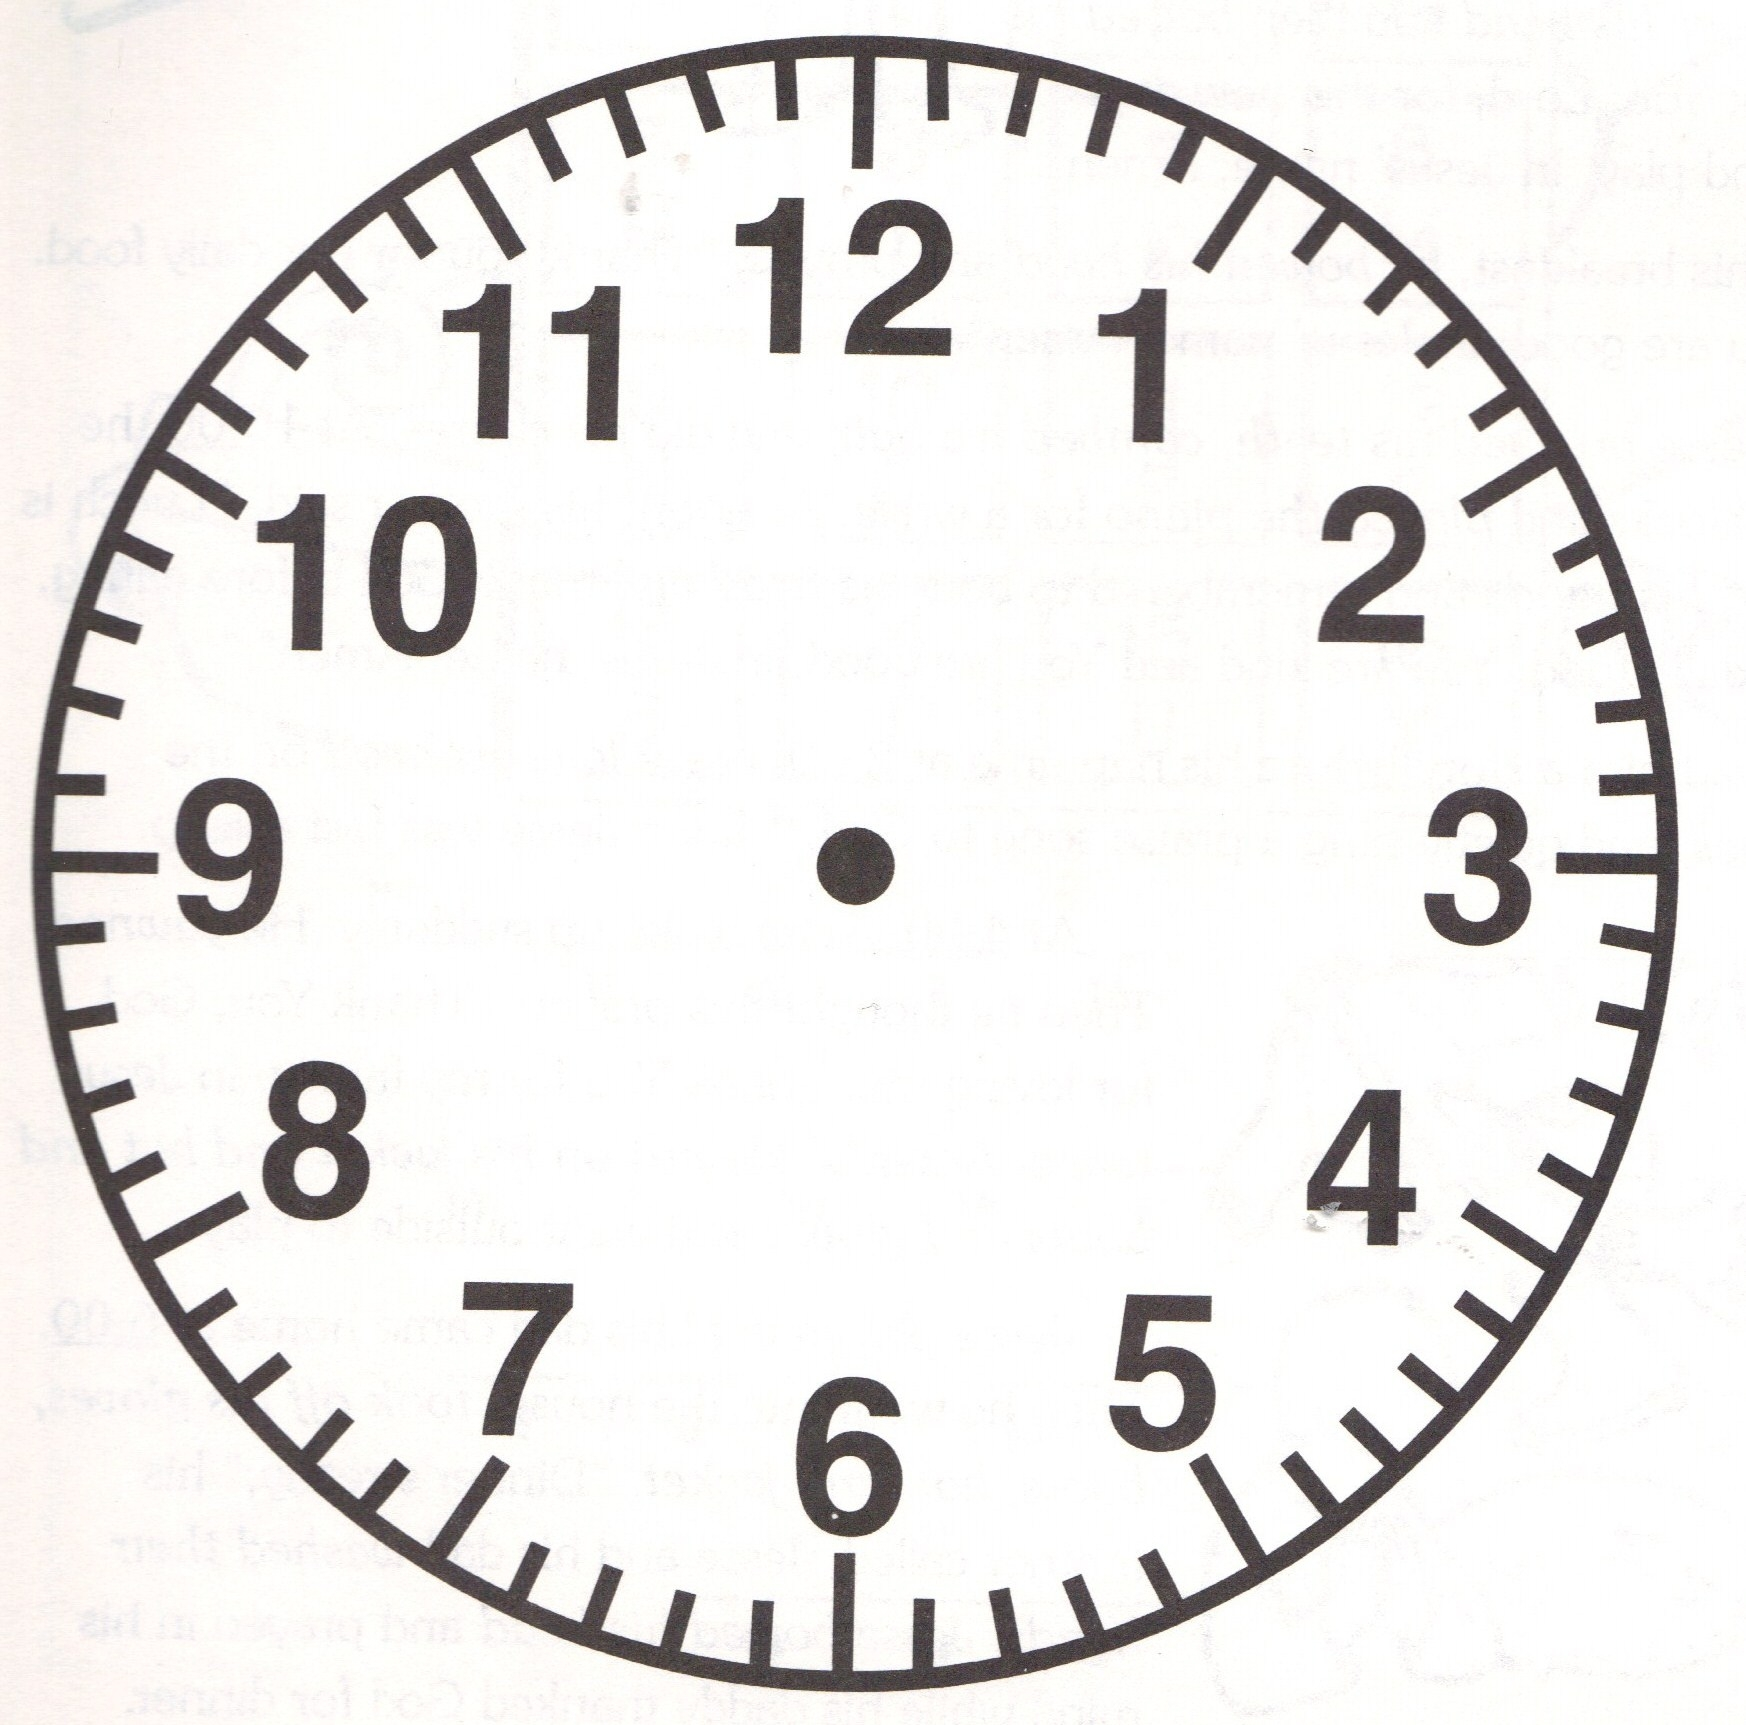 Printable Clock Face Without Hands Clipart Best with clocks.